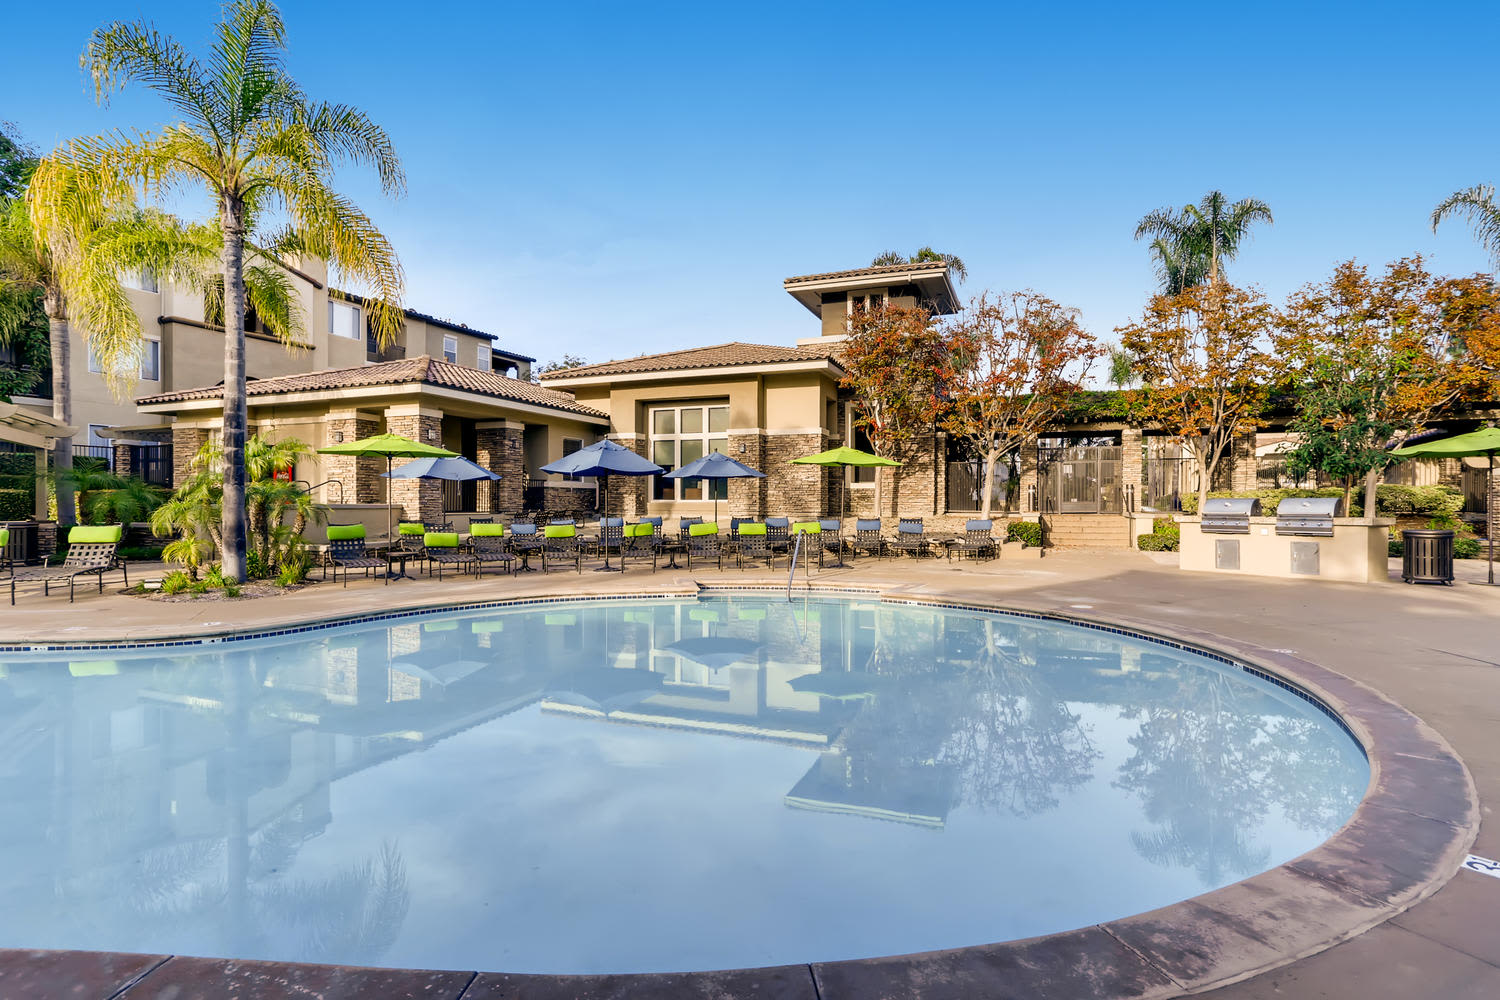 View photos of our luxurious property at Alize at Aliso Viejo Apartment Homes in Aliso Viejo, CA